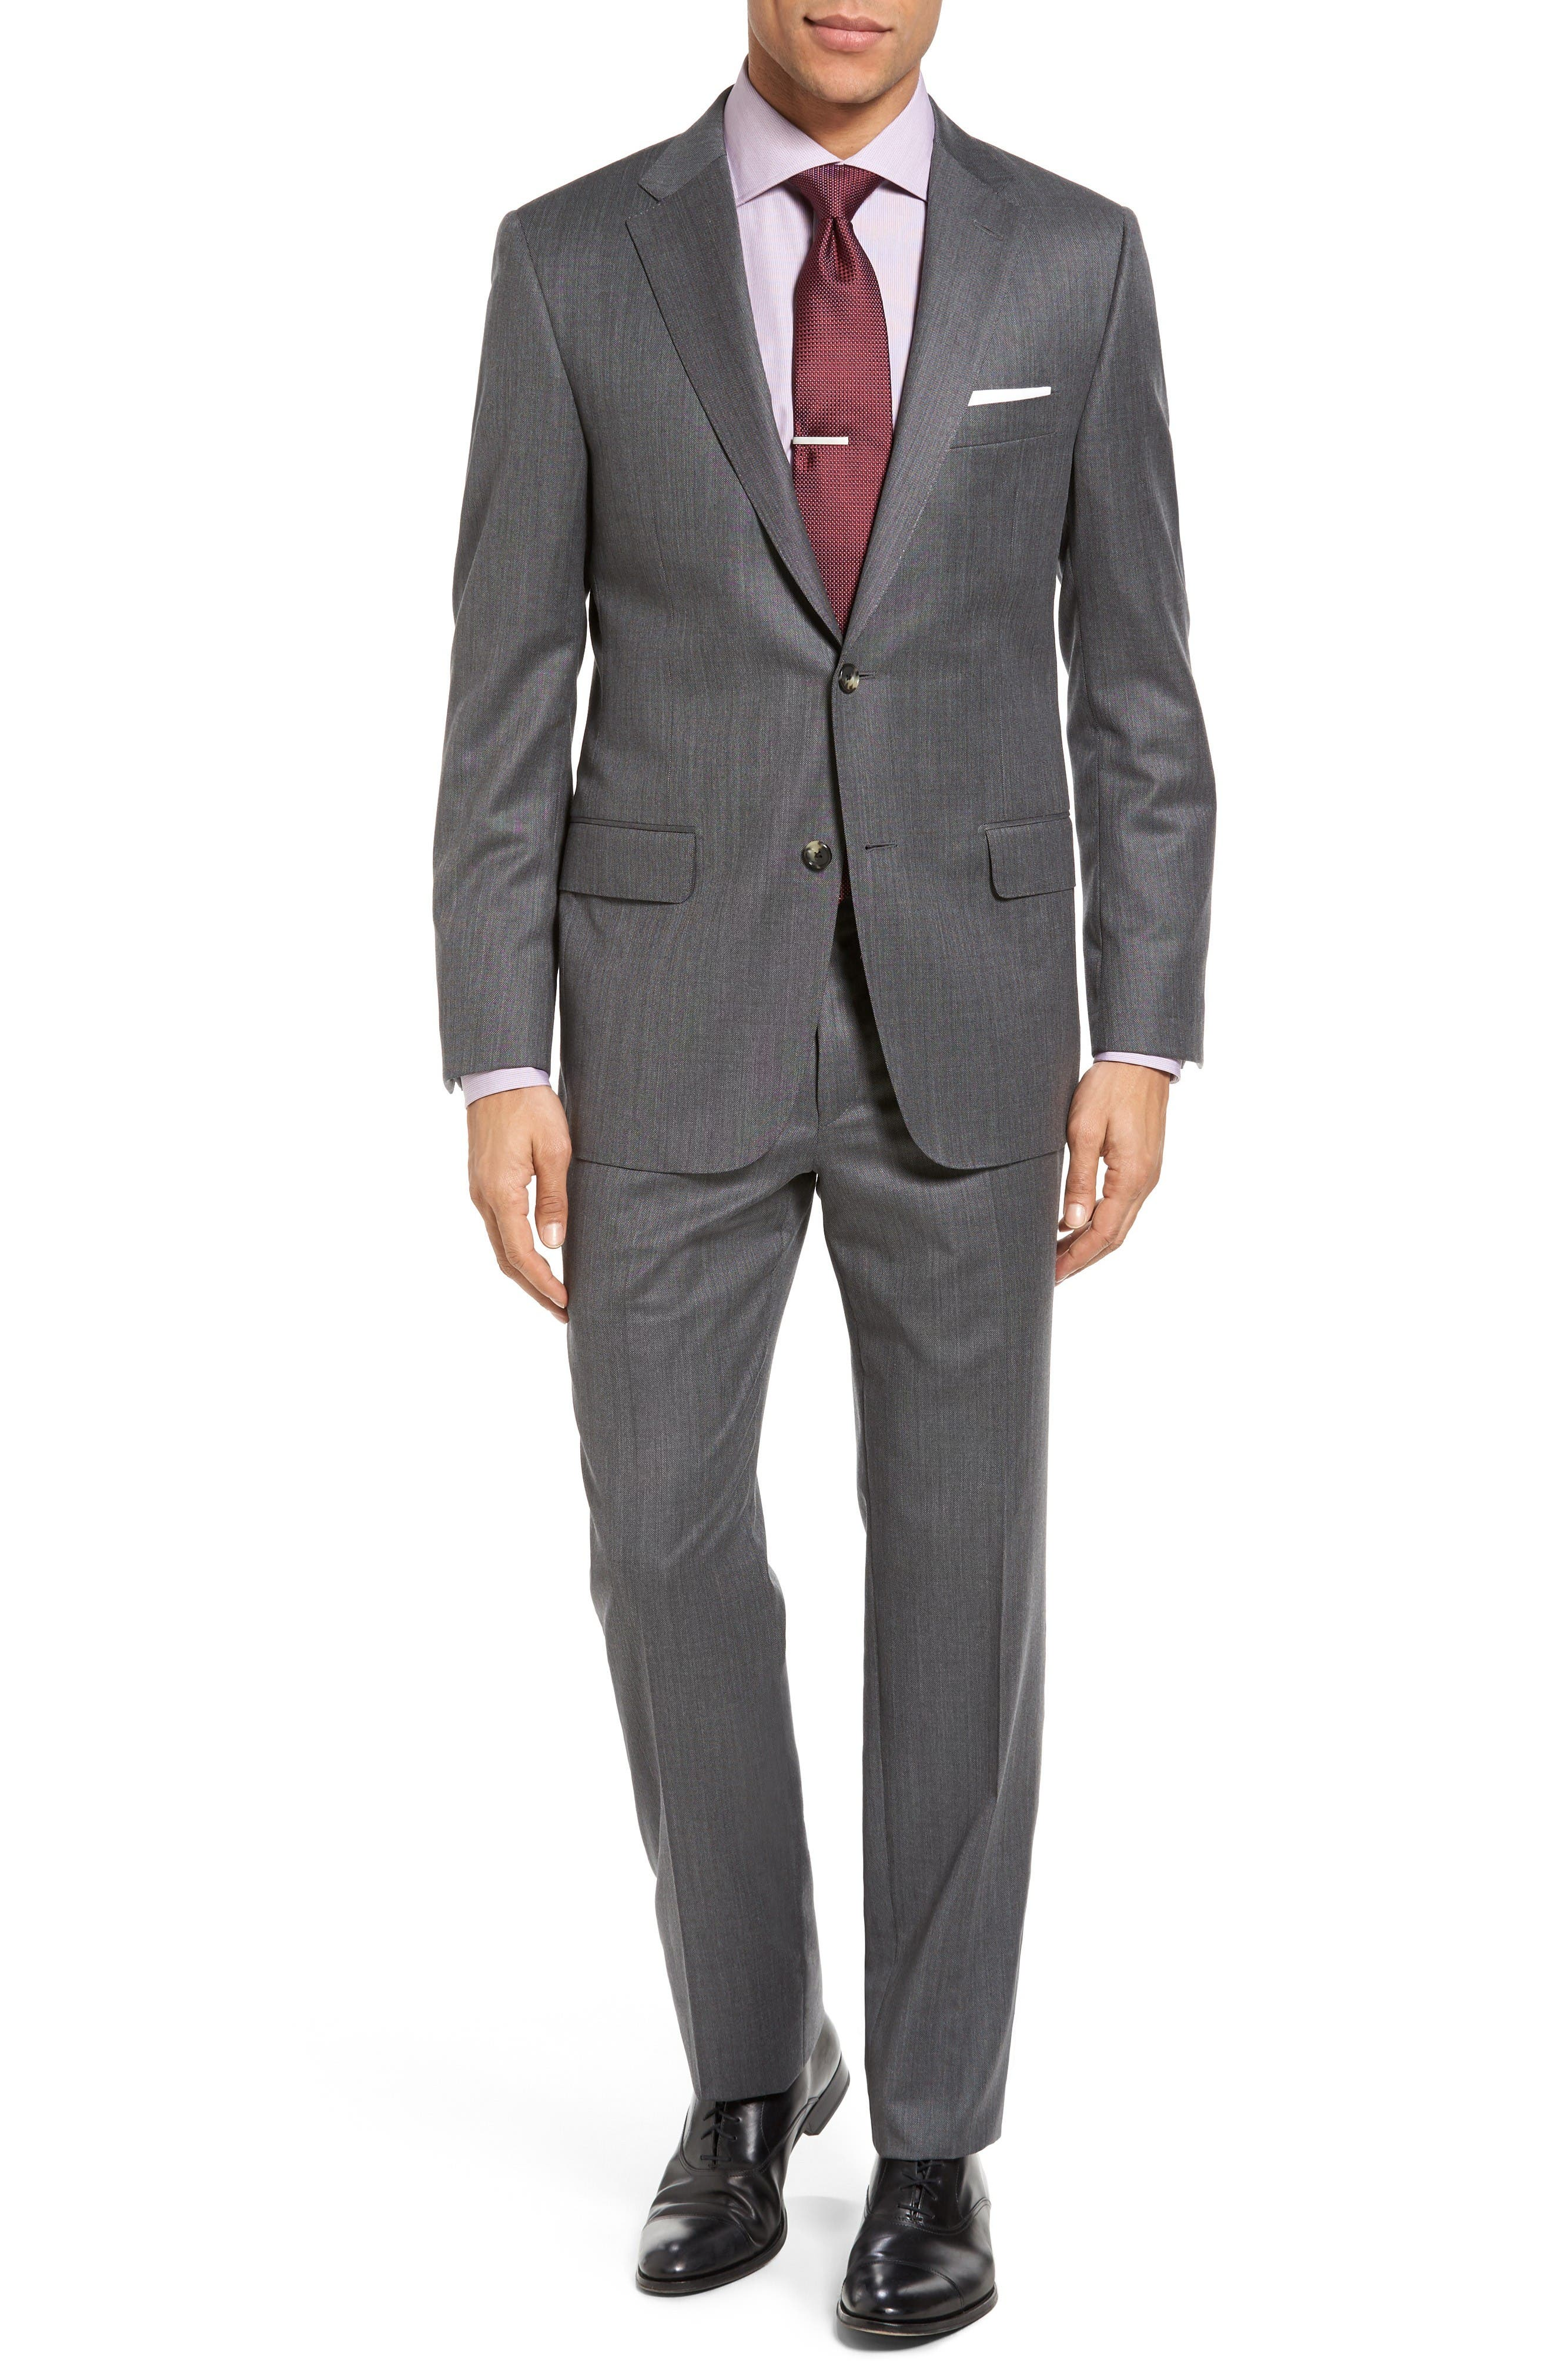 HICKEY FREEMAN Beacon Classic Fit Birdseye Wool Suit